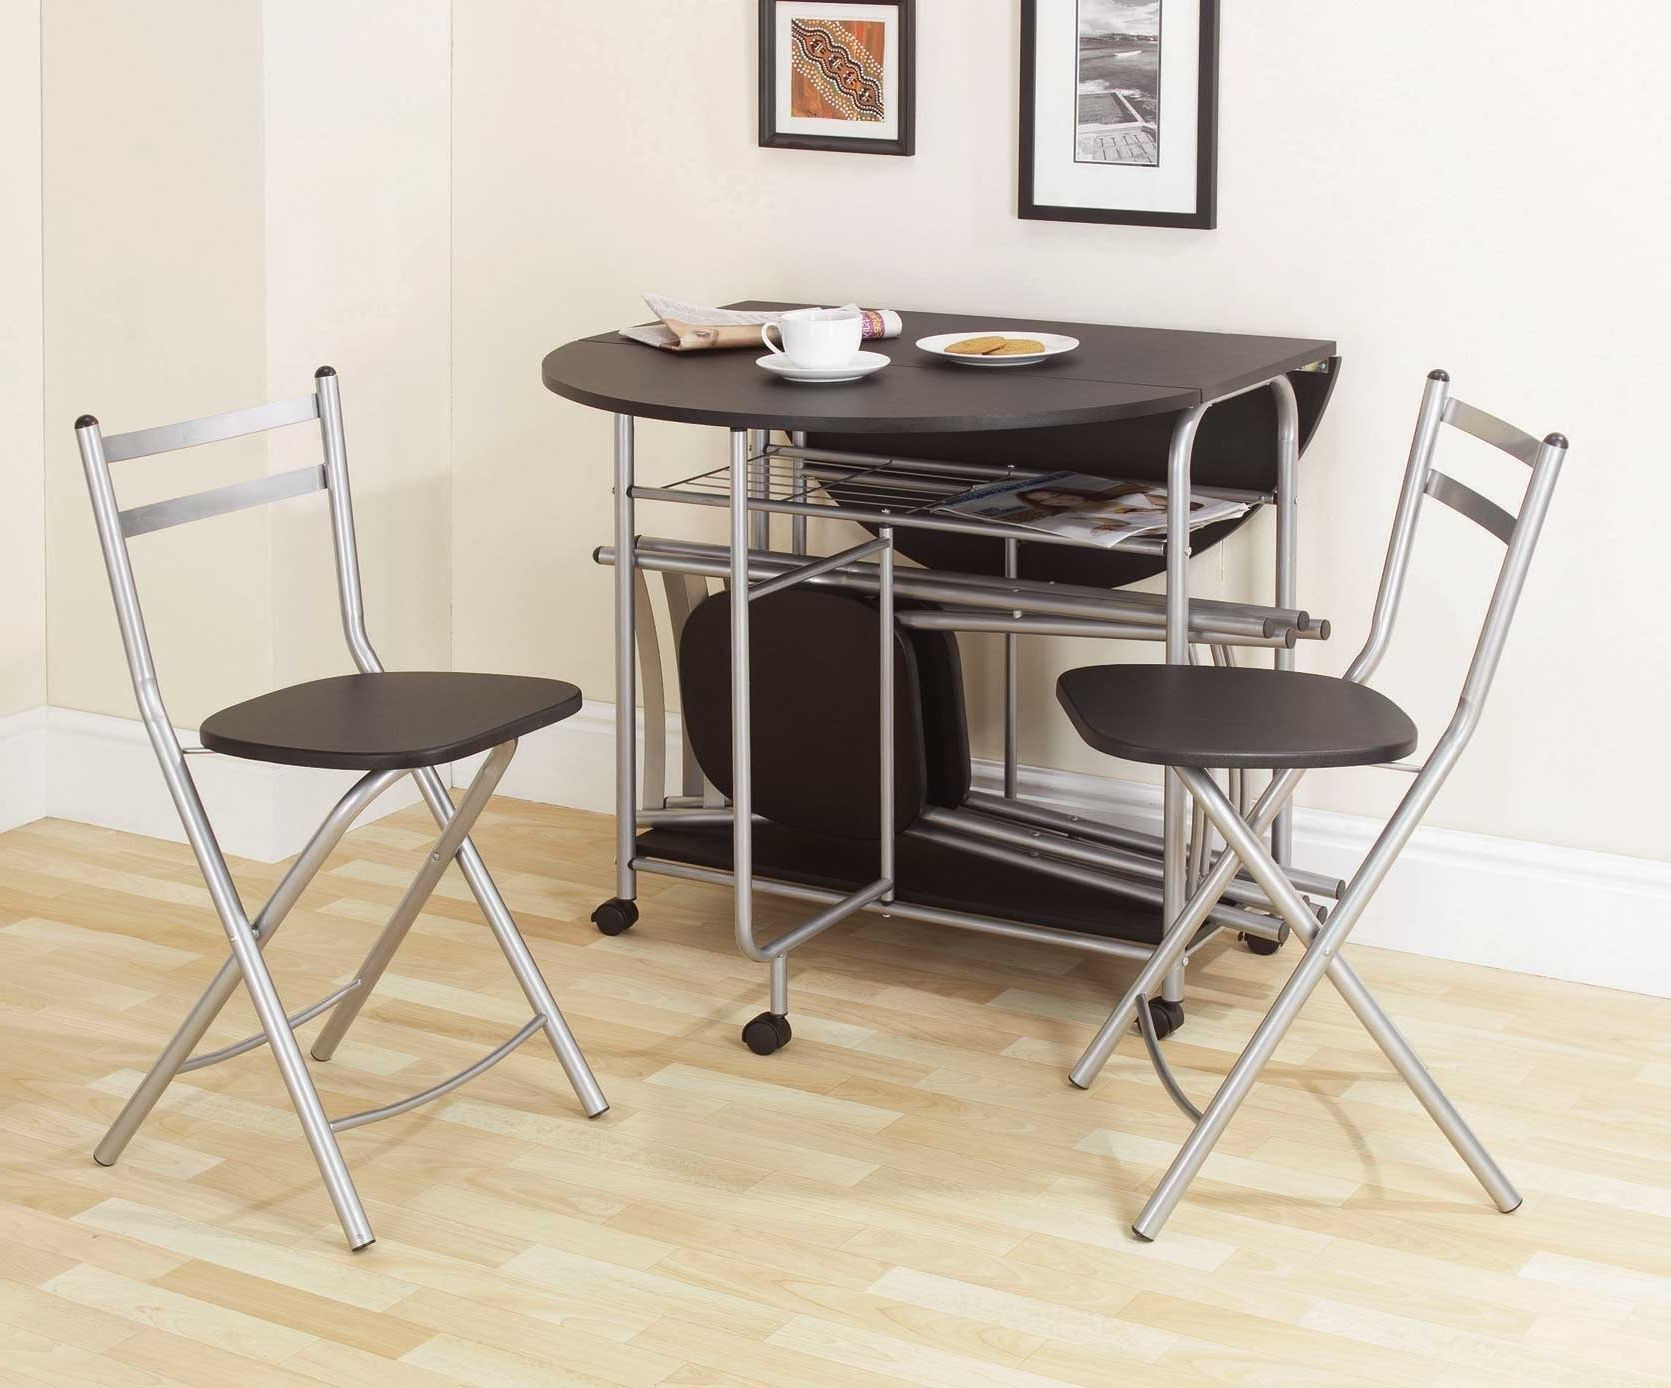 Small Kitchen Table And Chairs Argos Stool Vancouver Drop Leaf Folding Dinning Design Circular Dining